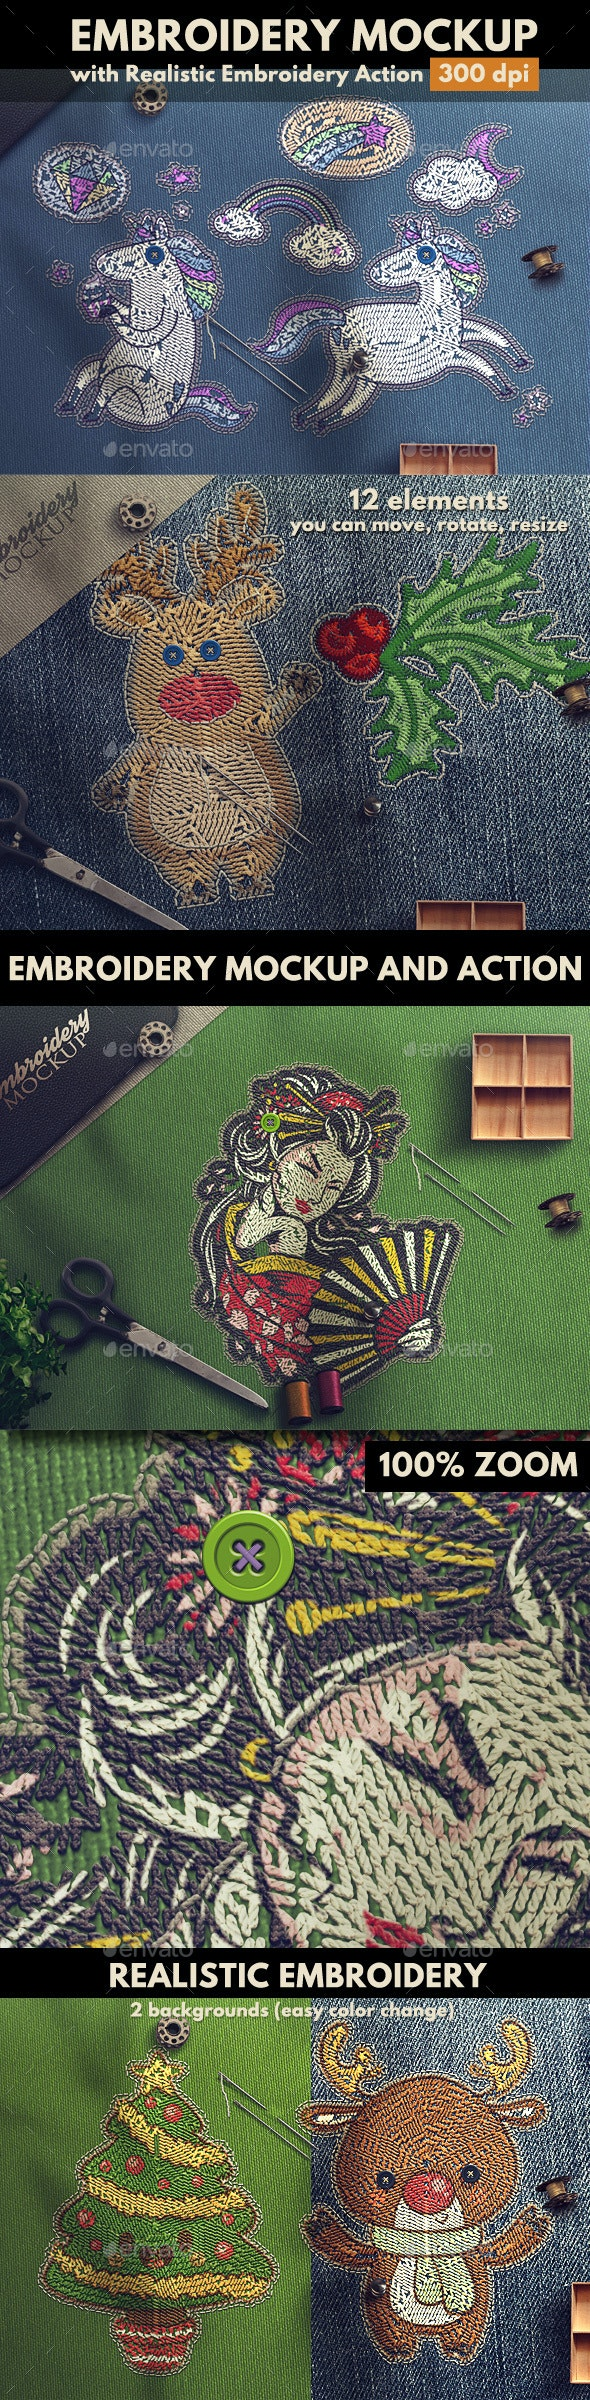 Embroidery Mockup with Embroidery Photoshop Action - Logo Product Mock-Ups